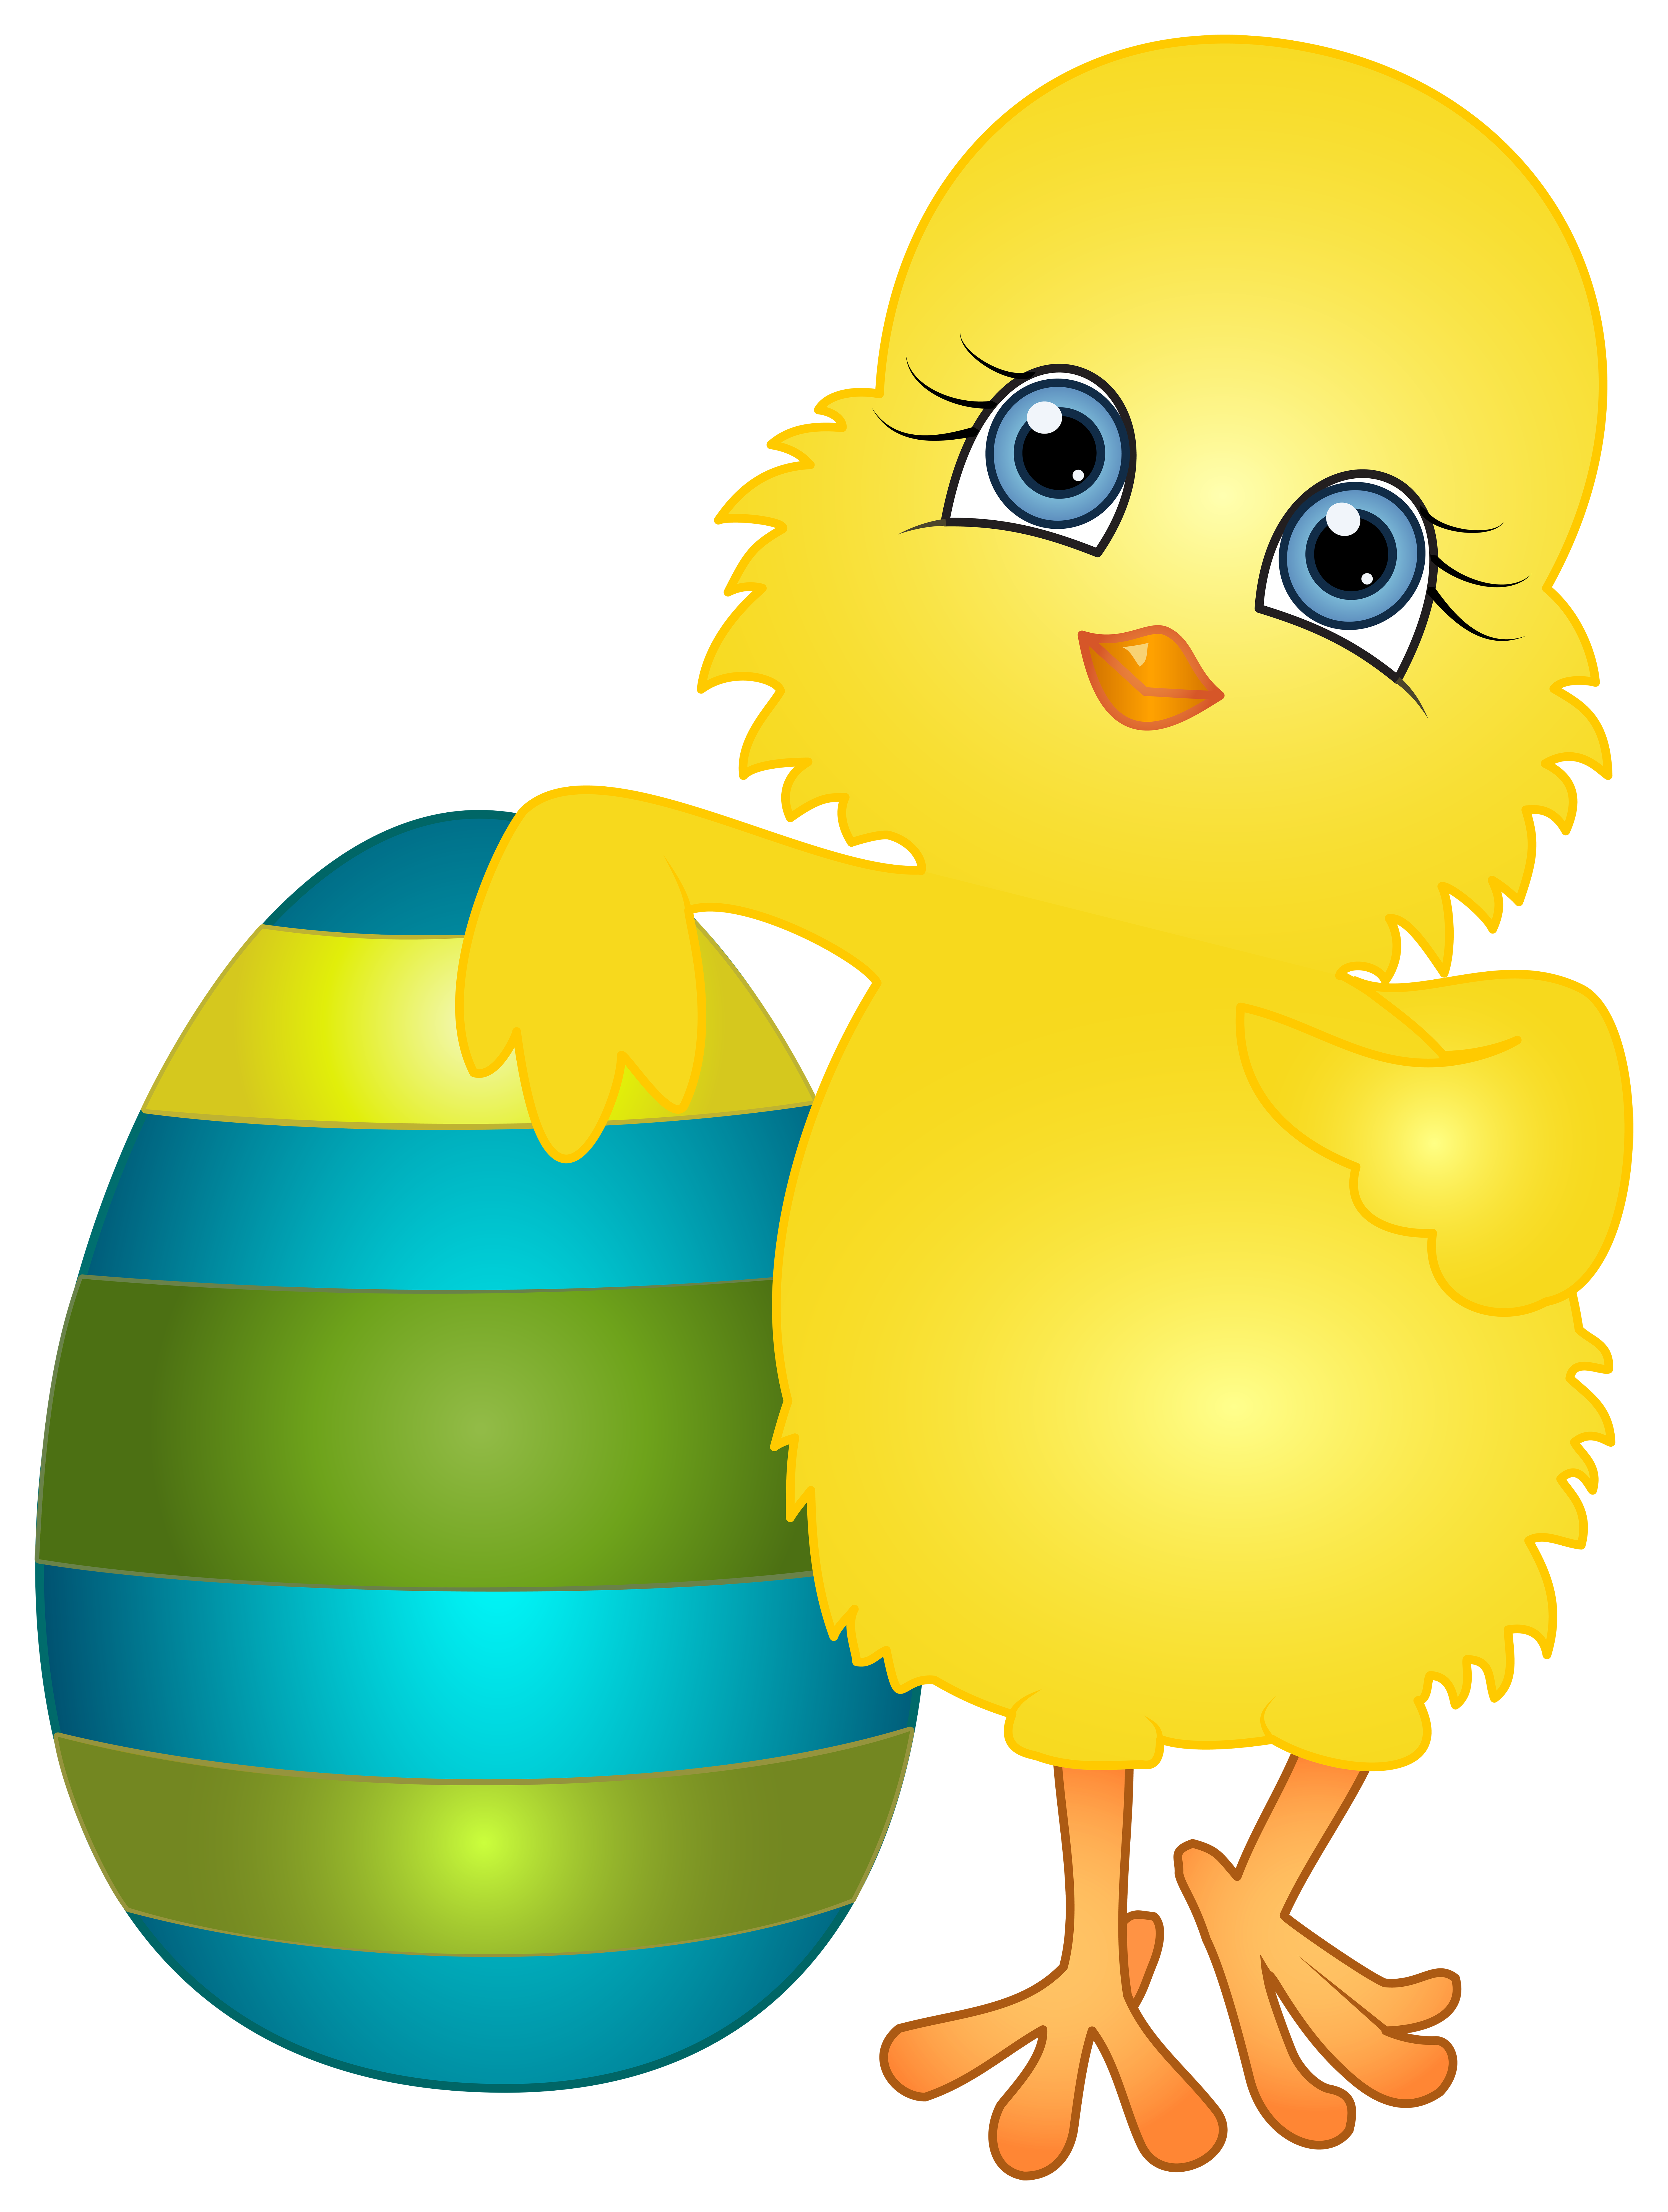 Easter with egg png. Ducks clipart chicken